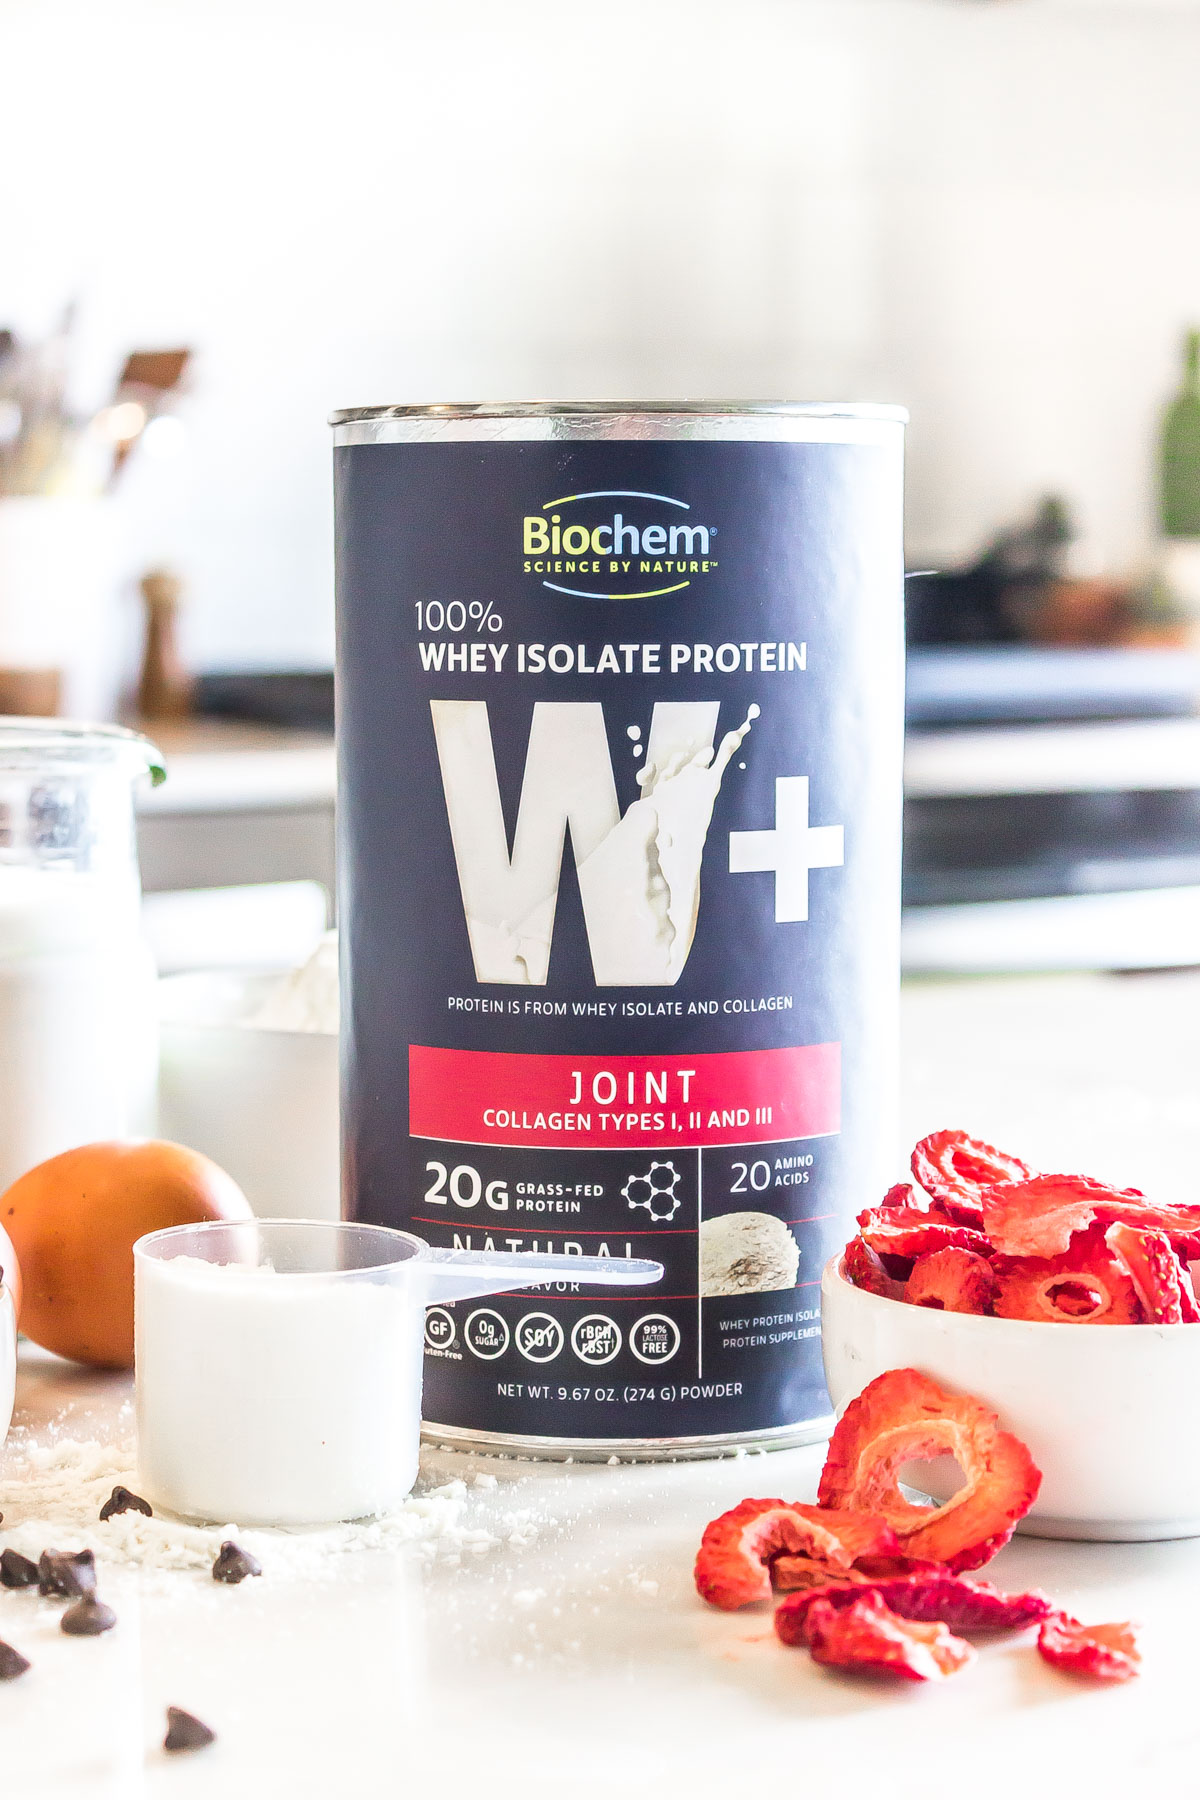 Biochem whey isolate protein plus joint cannister featured with strawberries